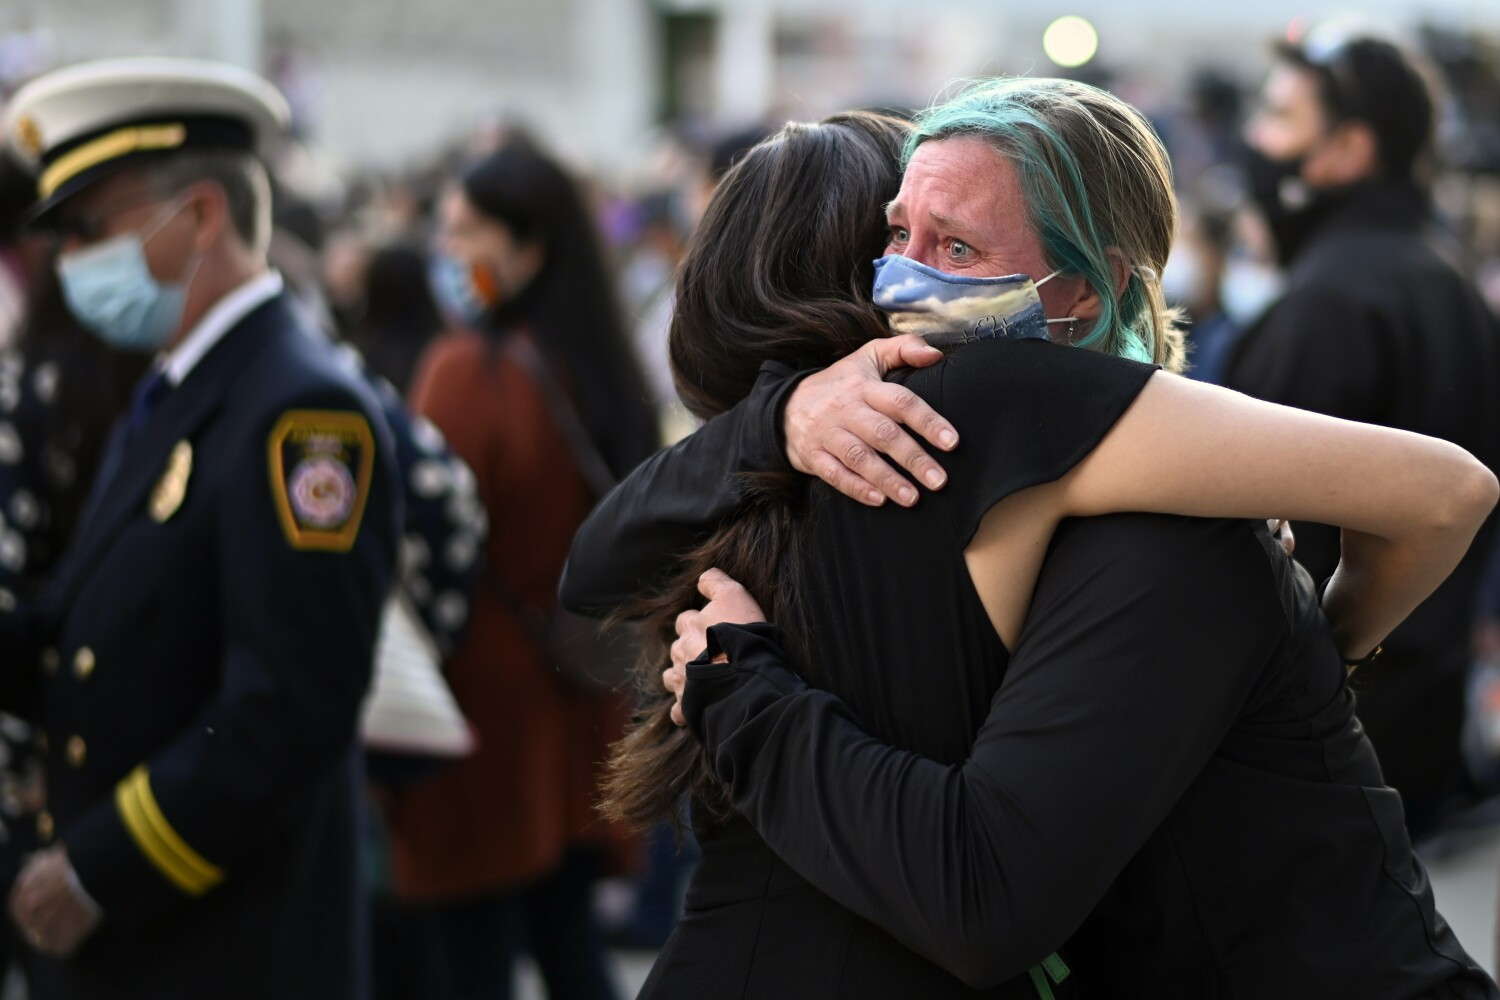 Column: California already has strong gun laws. But to save lives we have to use them